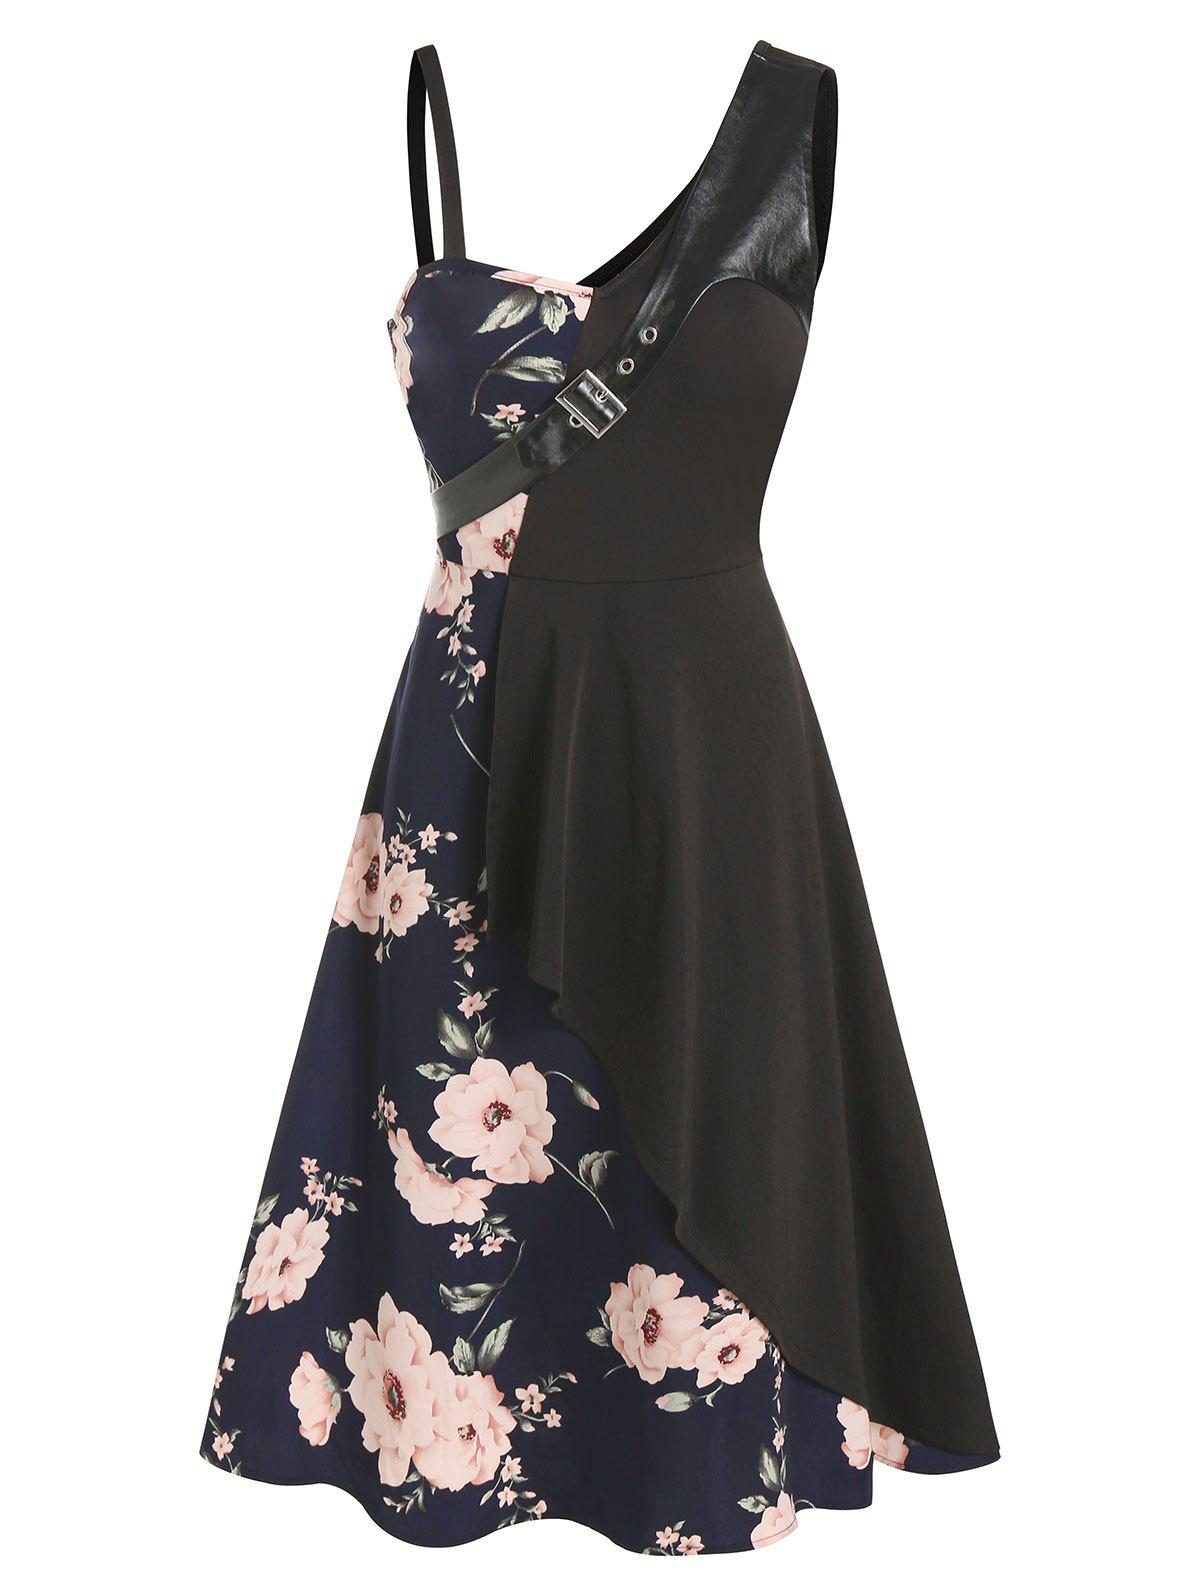 Shops Floral Print Buckled Layered Asymmetrical A Line Dress